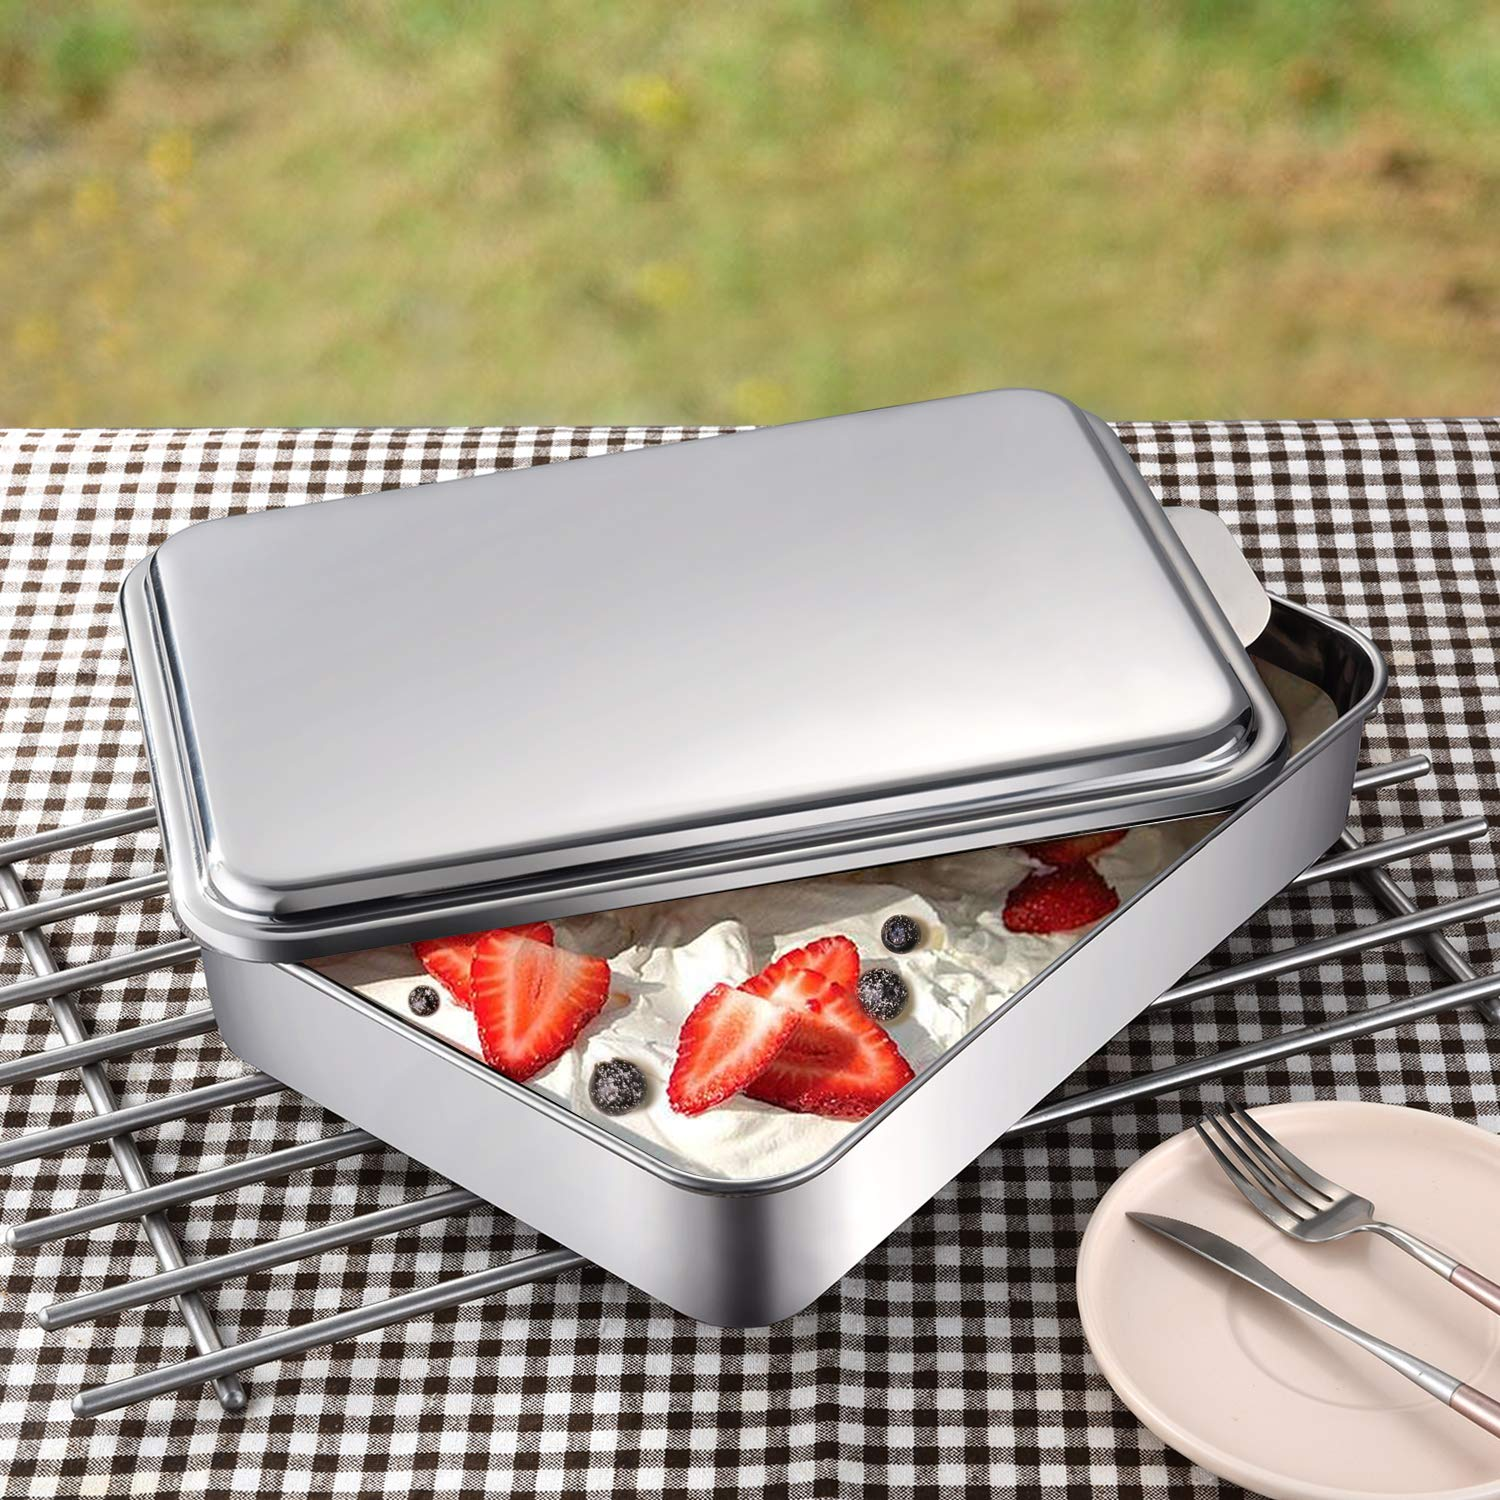 Mr Rudolf 18/10 Stainless Steel 9 X 13 Inches Bakeware Rectangle Cake Pan with Removable Lid Cheesecake Pan Leakproof